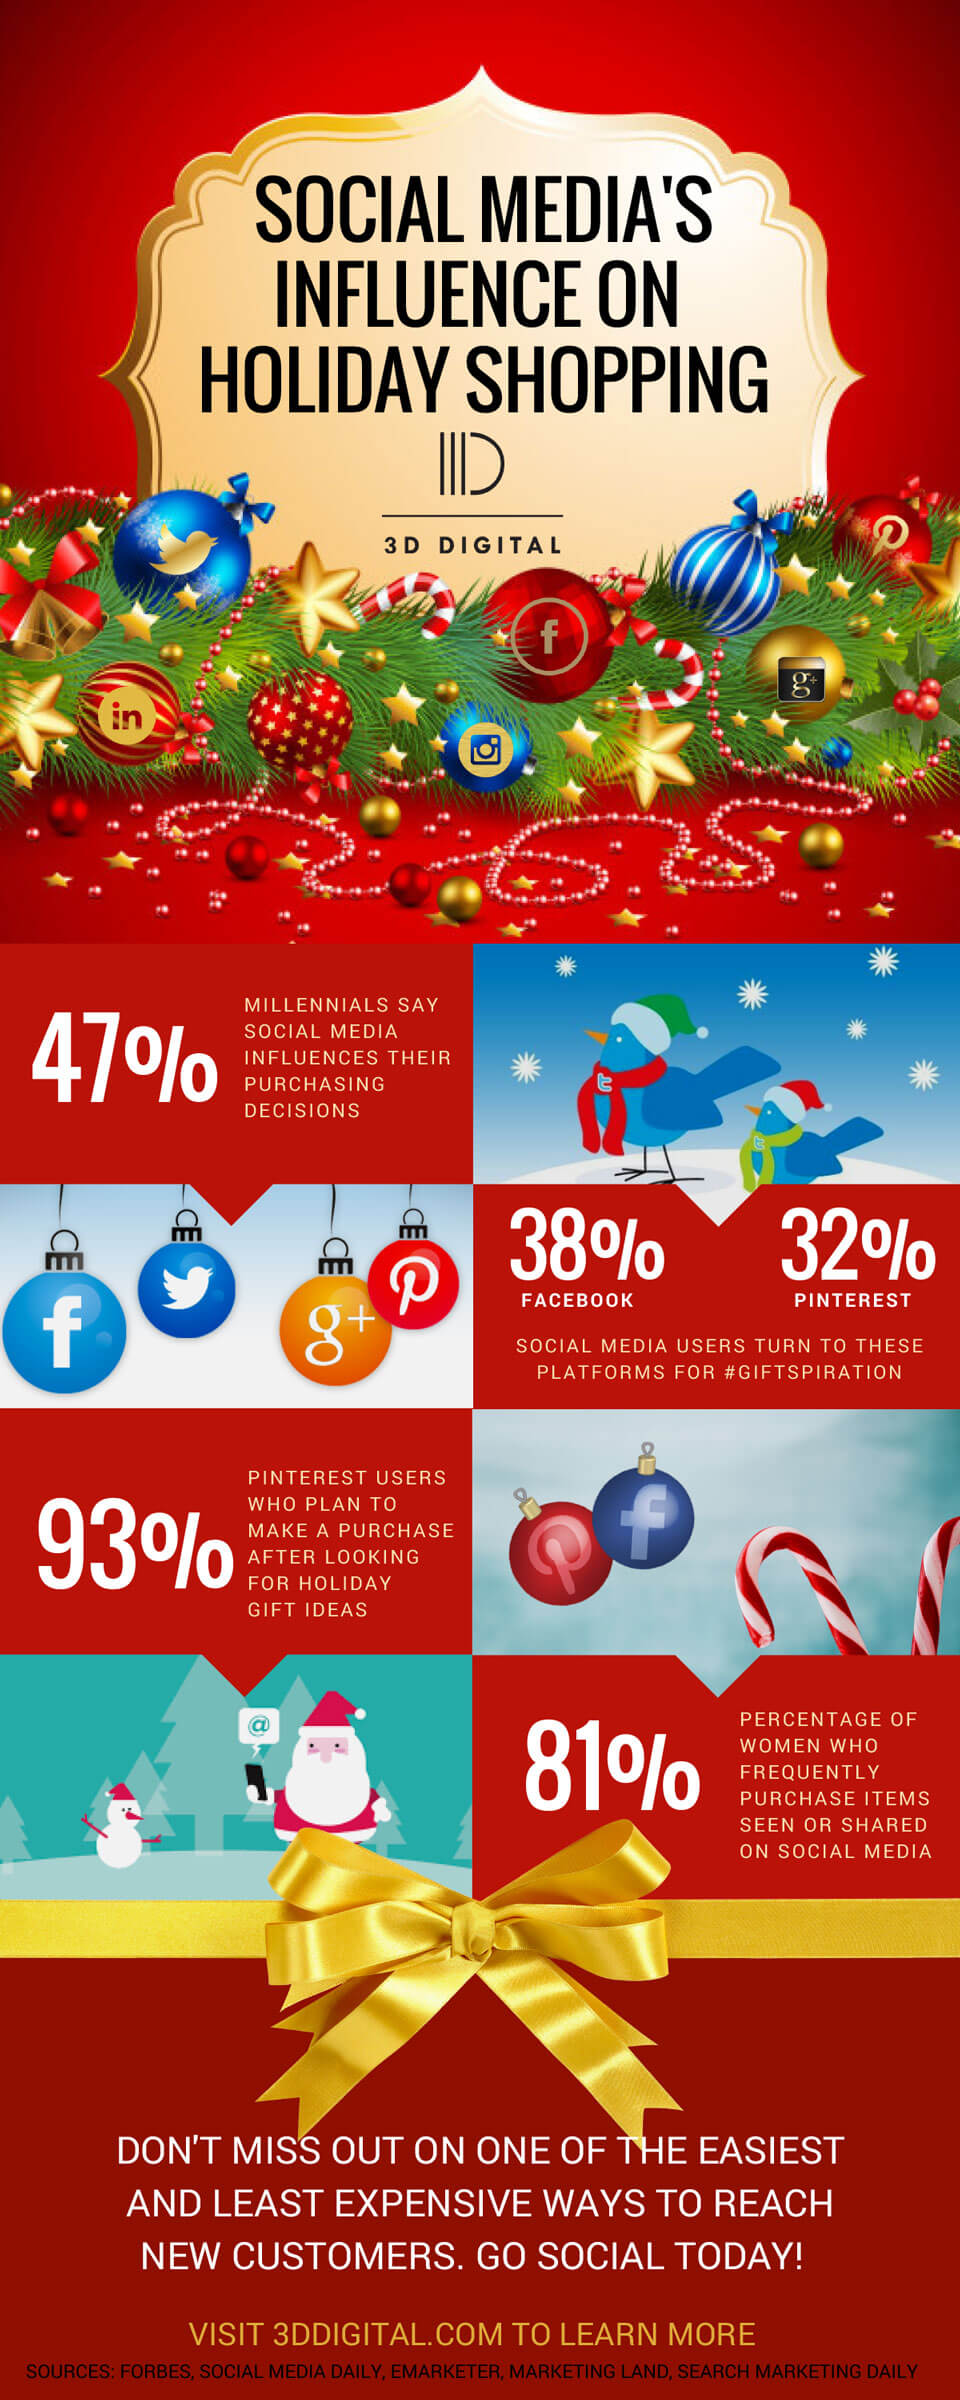 social media's influence on holiday shopping